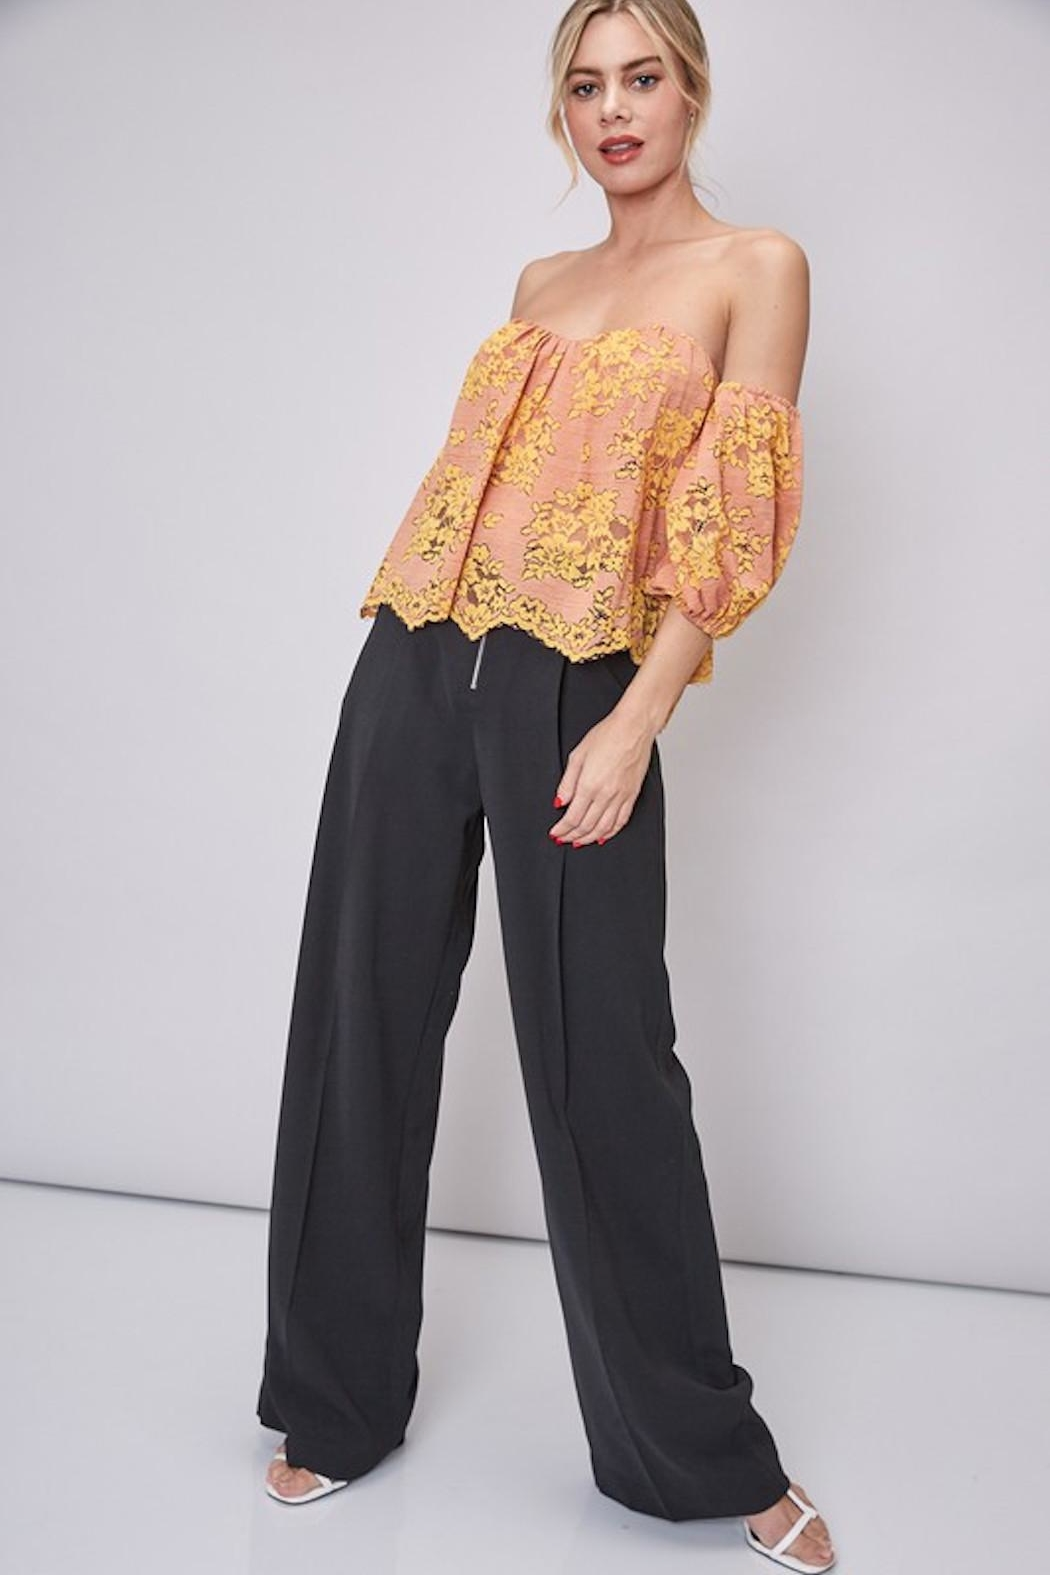 Do & Be Lace Strapless Top - Back Cropped Image